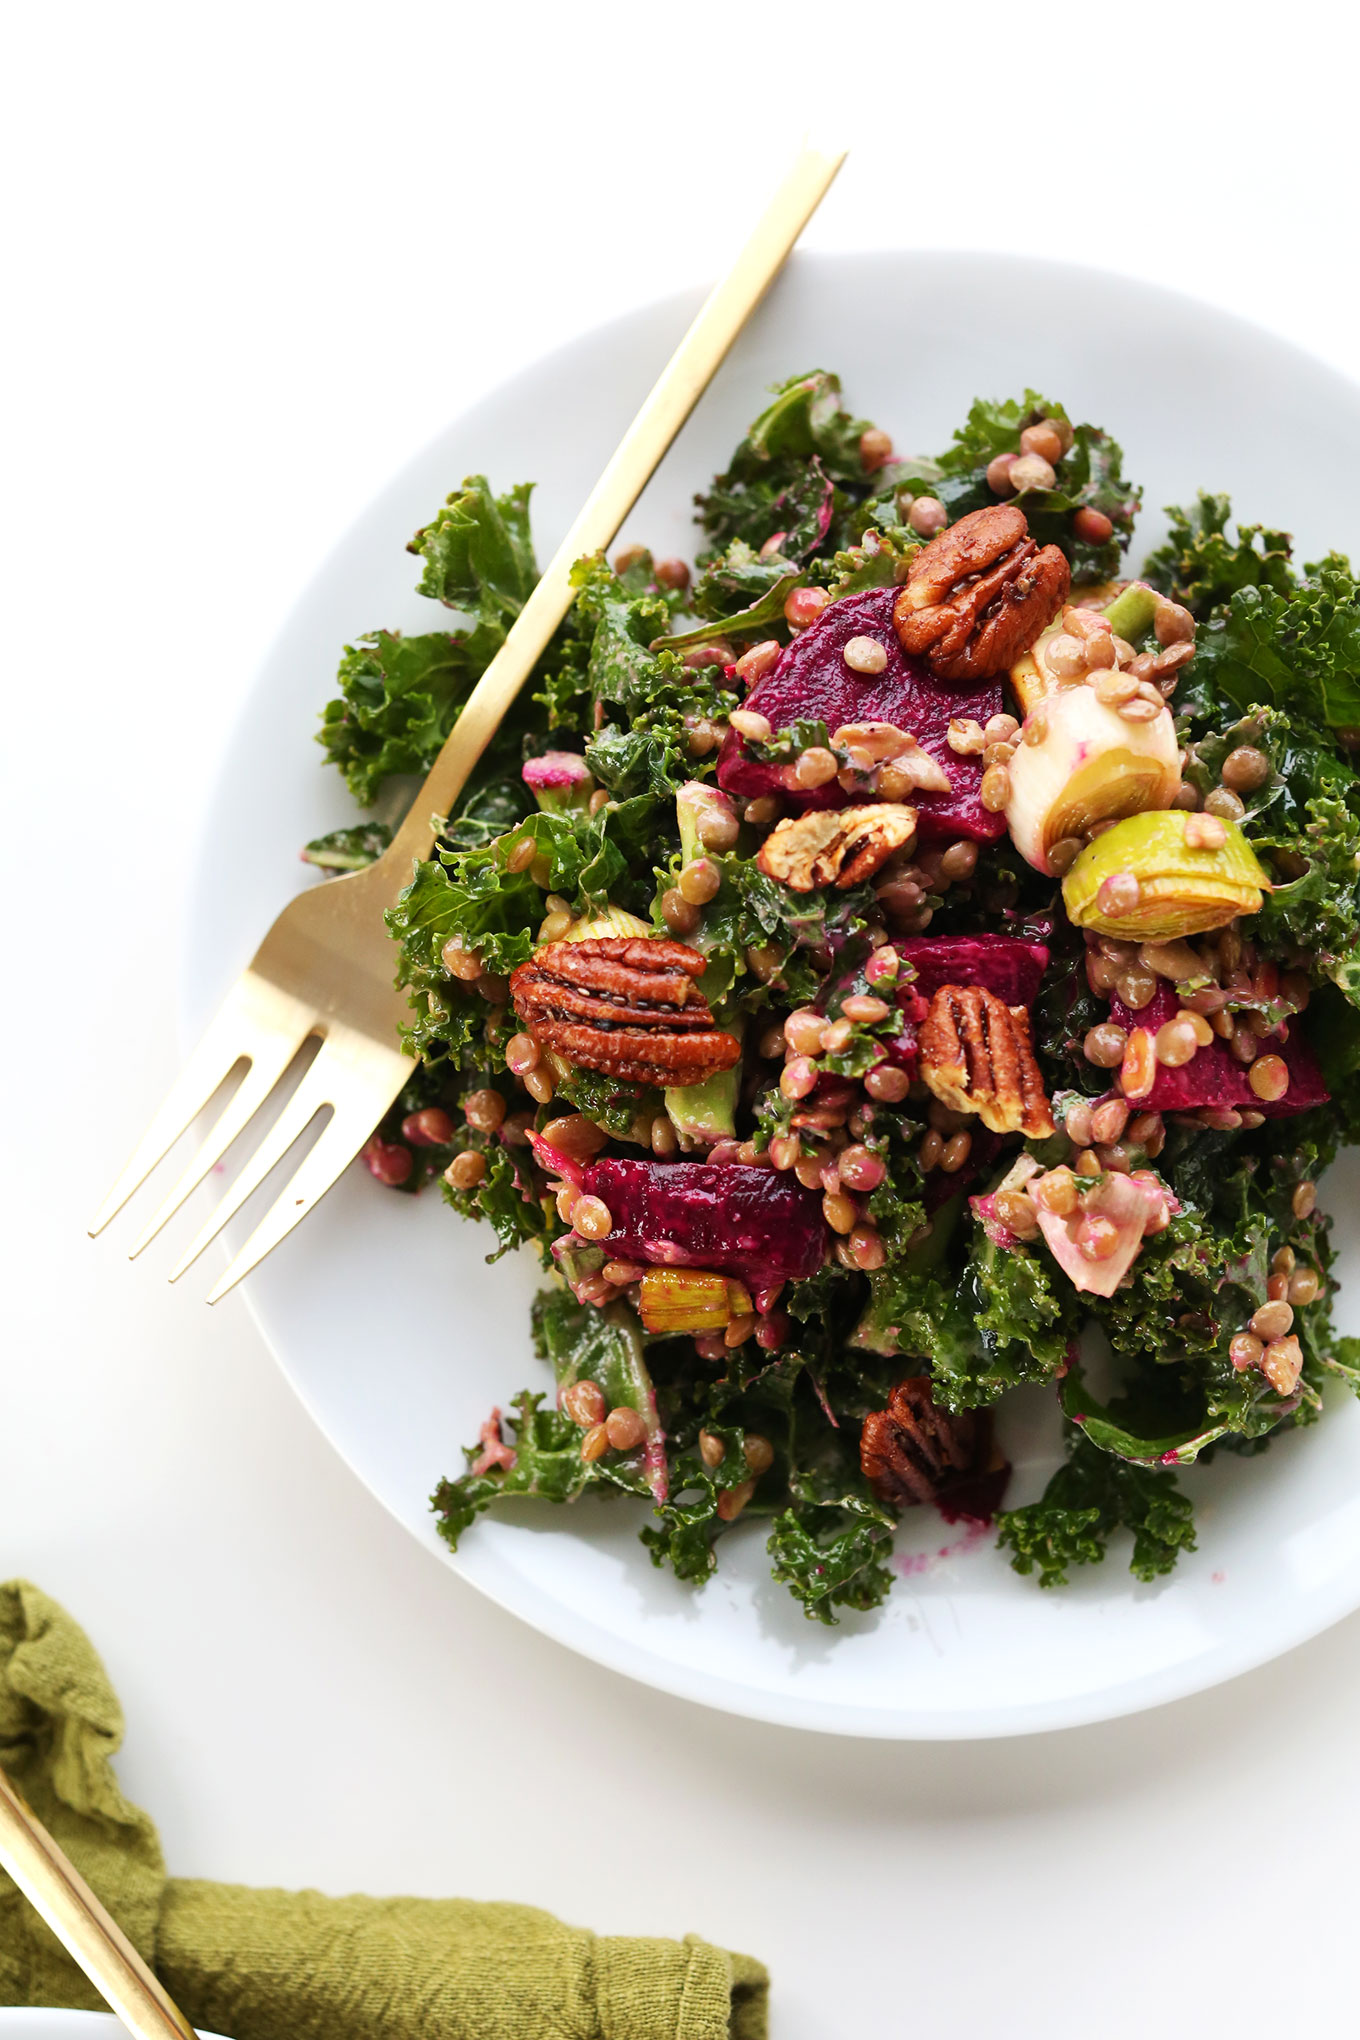 Big plate of our healthy gluten-free vegan winter kale salad